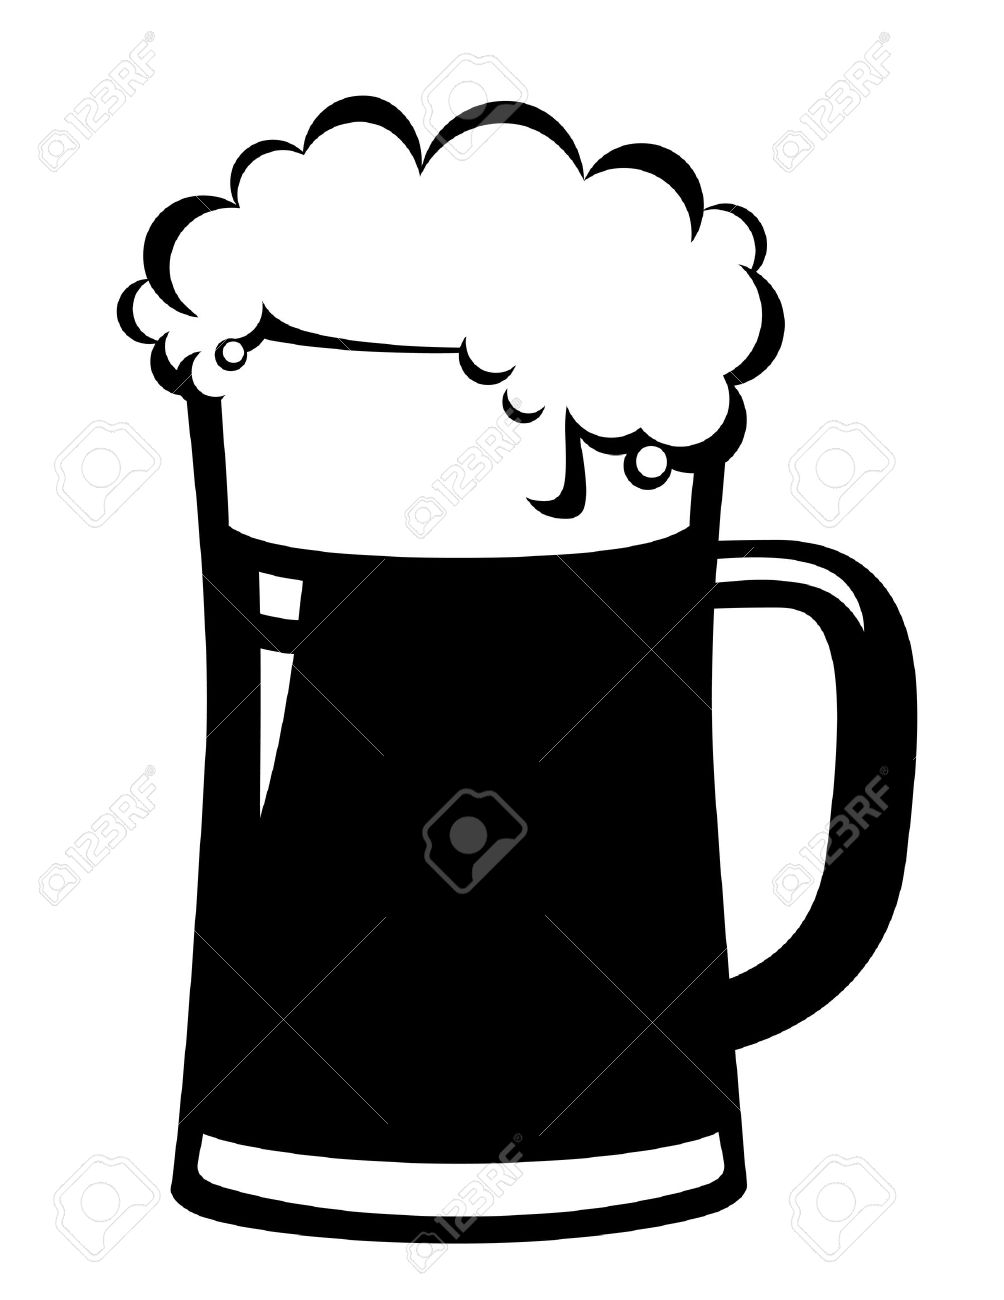 Beer Mug Clipart Black And White